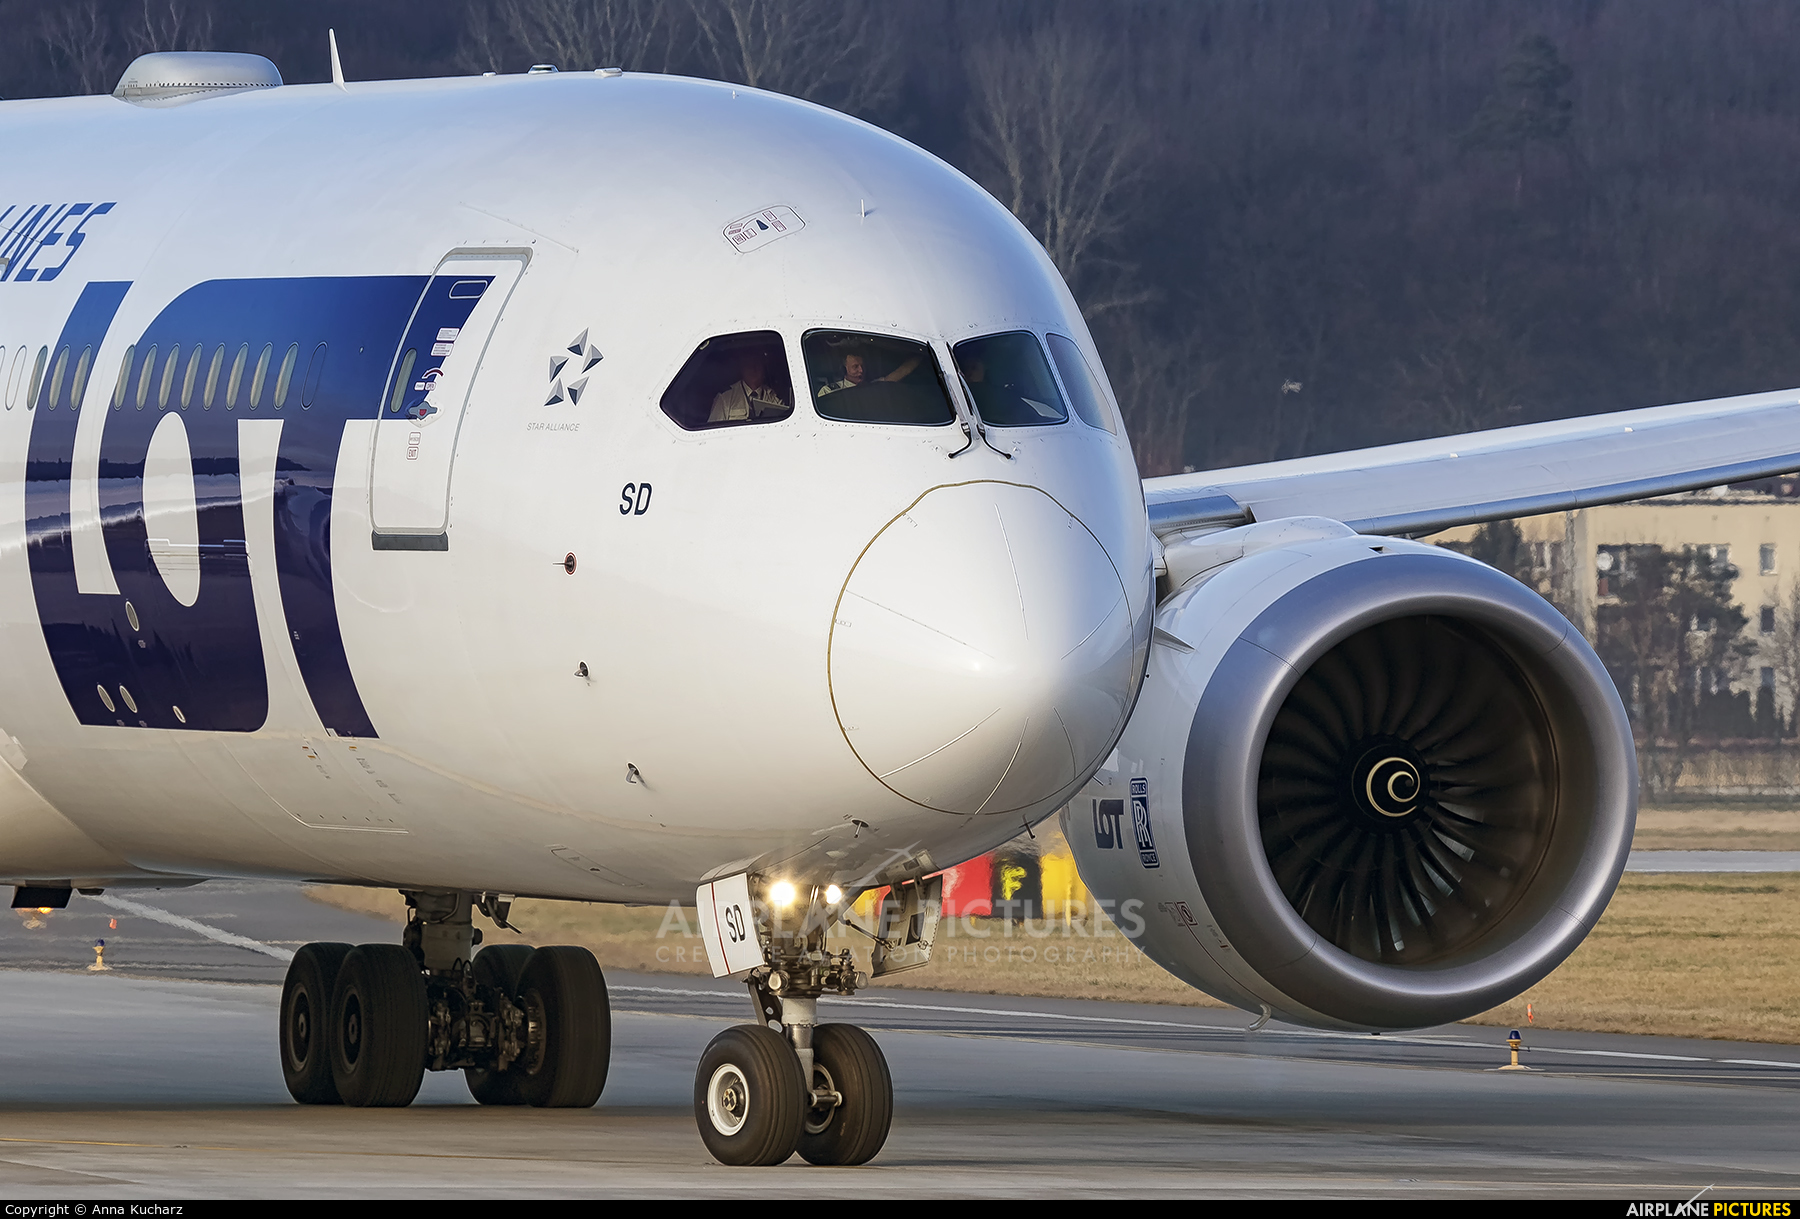 LOT - Polish Airlines SP-LSD aircraft at Kraków - John Paul II Intl